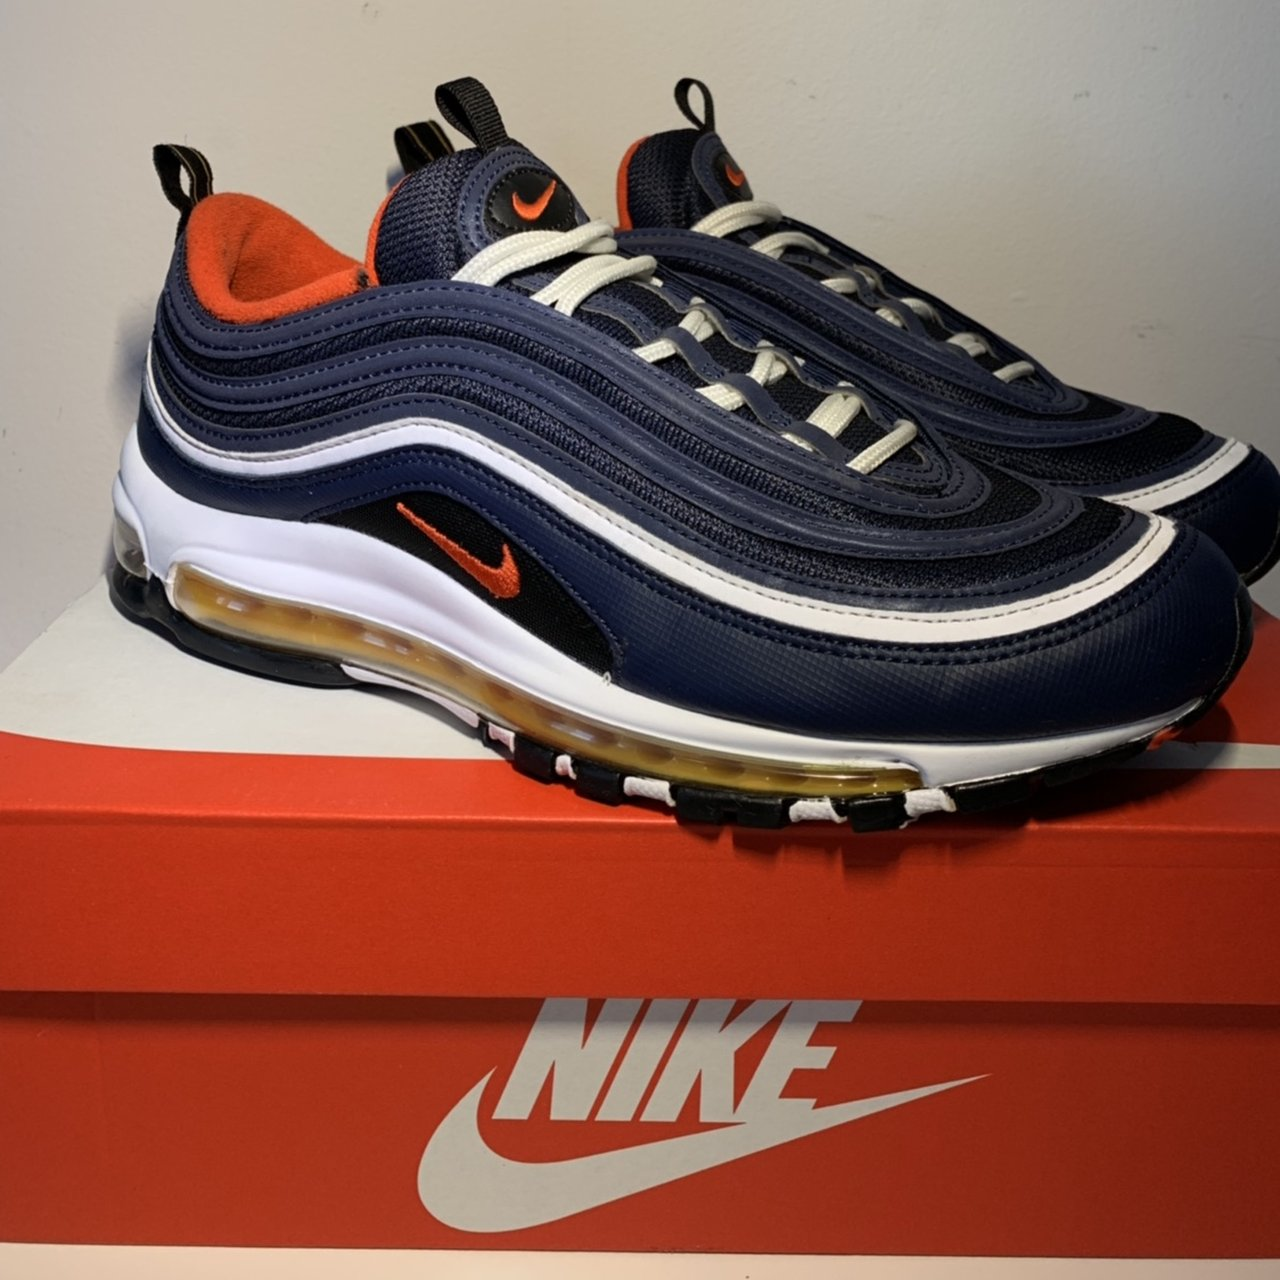 Nike Air Max 97 Blue/Red/Yellow/White